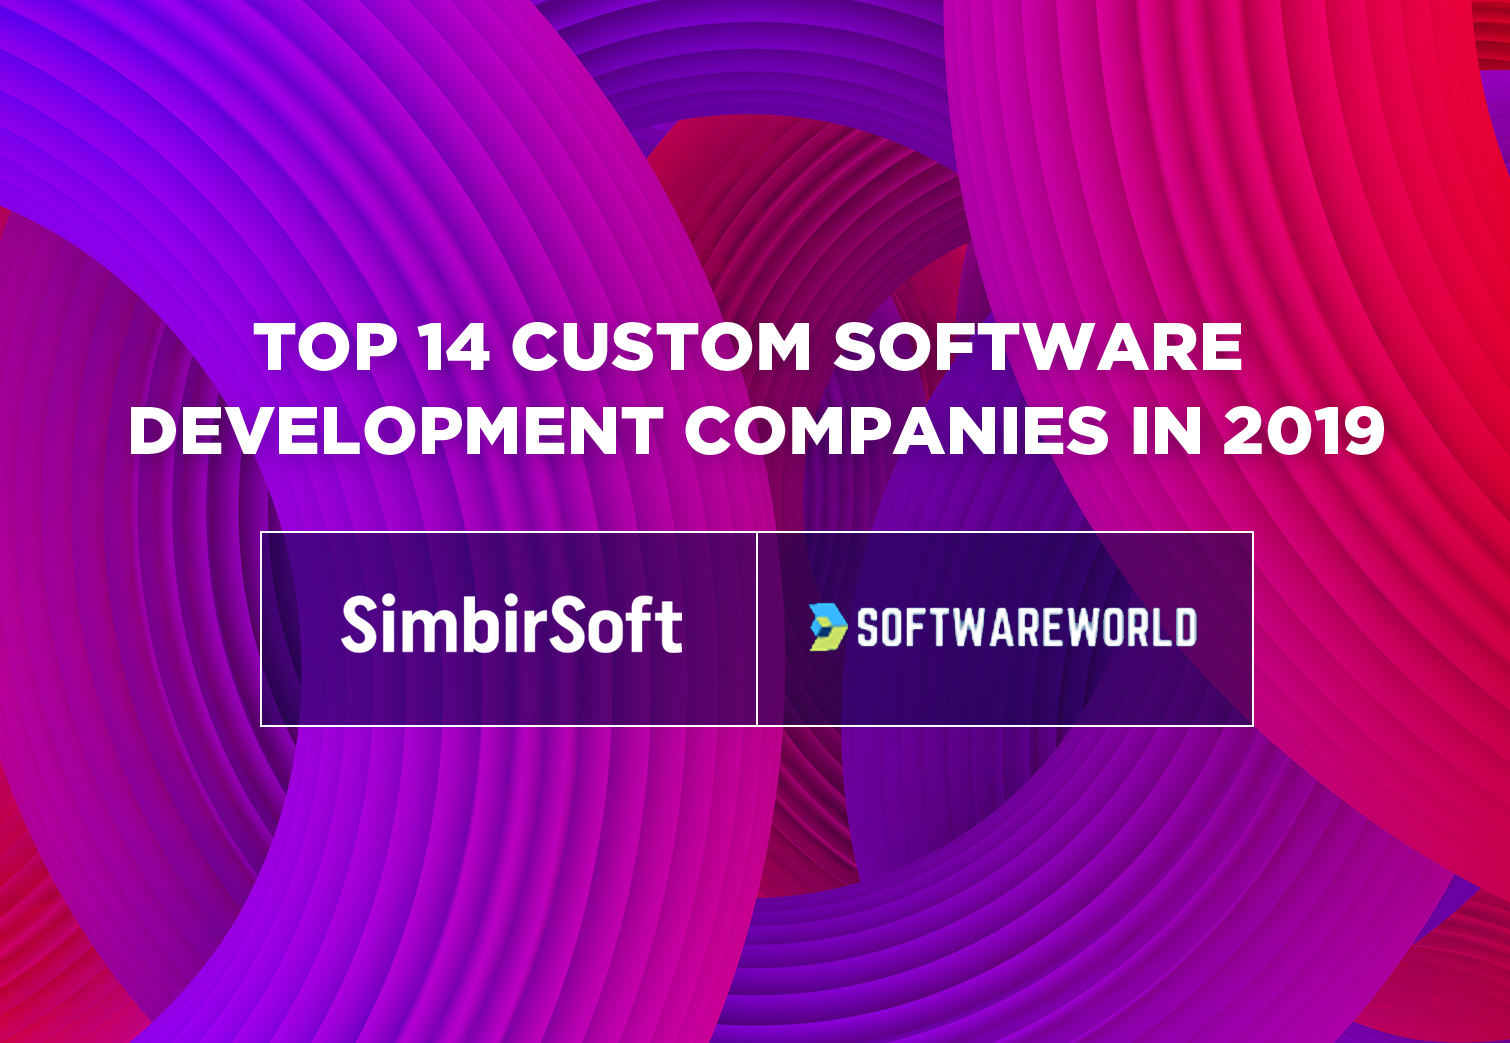 SimbirSoft is one of TOP 20+ Custom Software Development Companies in 2019